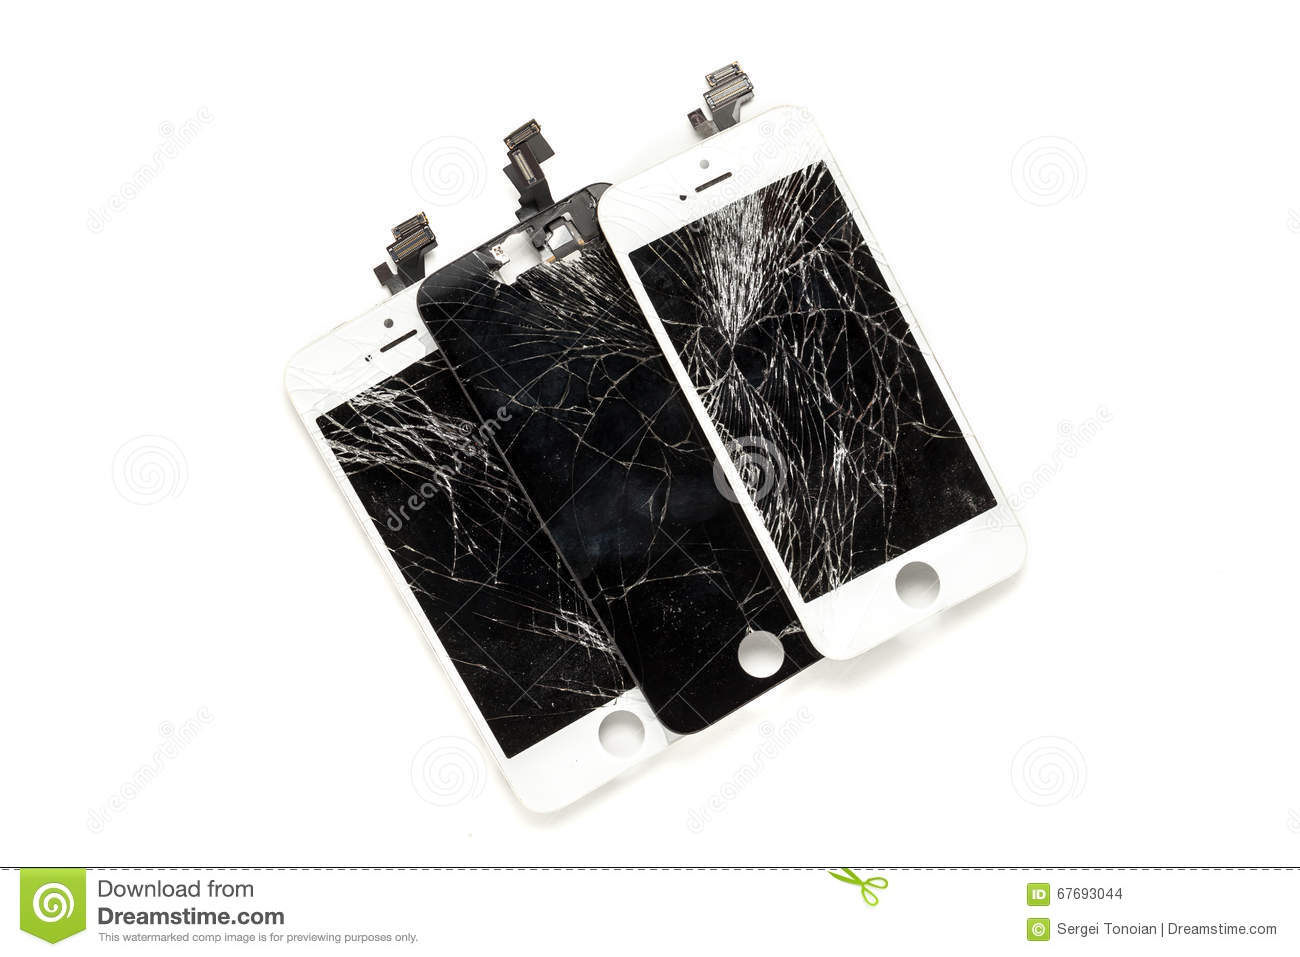 how to fix scratches on cell phone